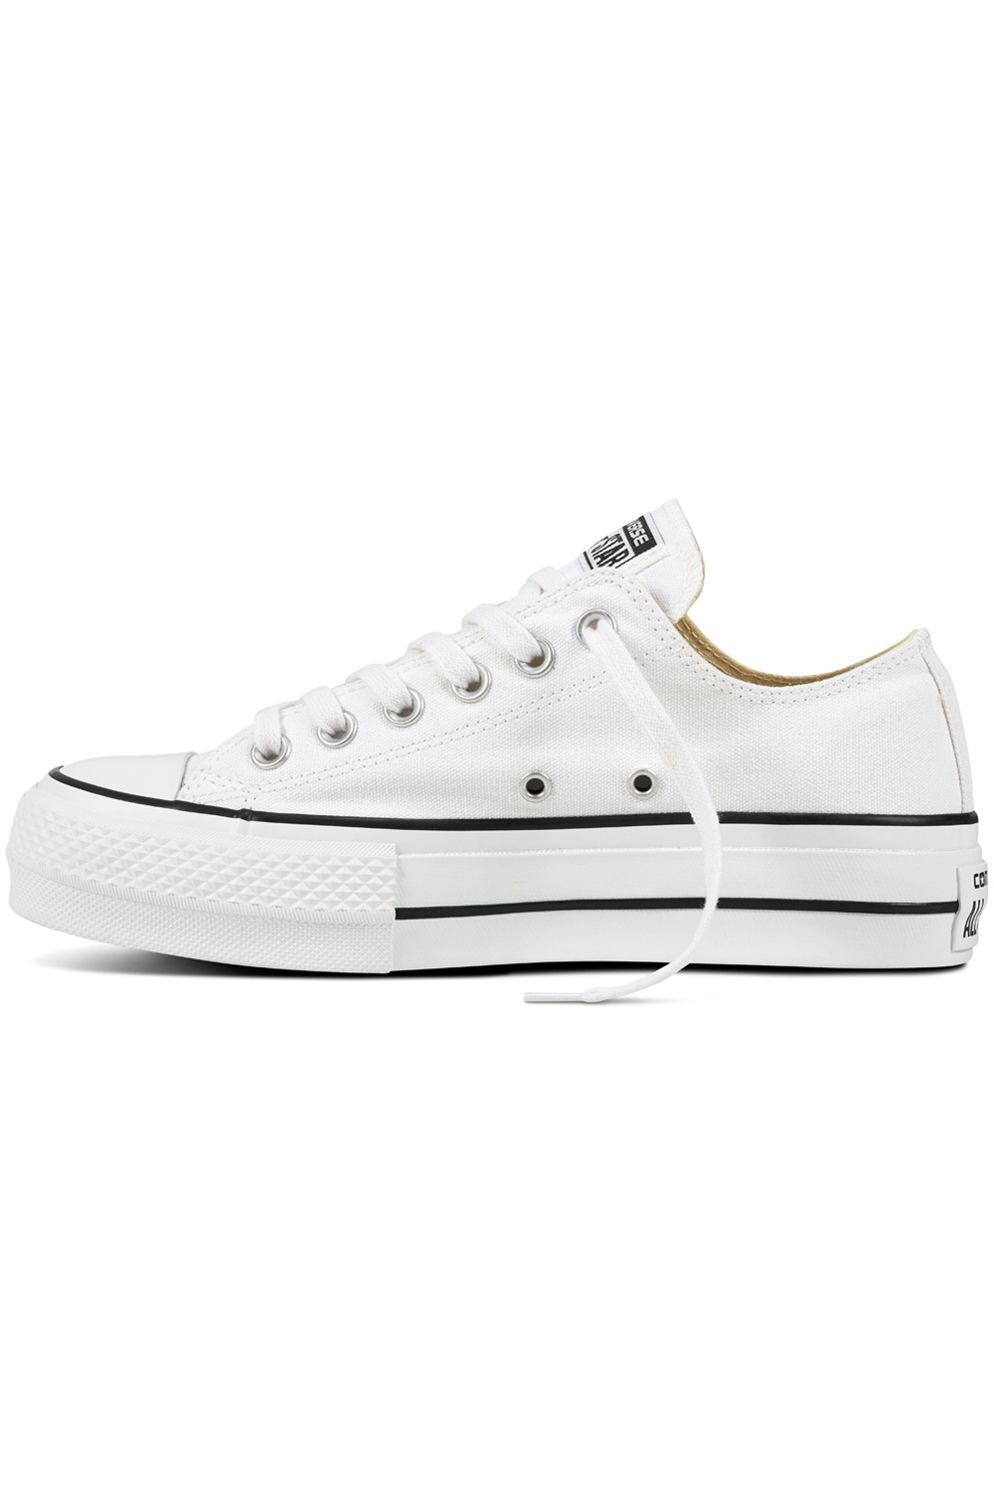 Tenis Converse CHUCK TAYLOR ALL STAR LIFT CLEAN OX White/Black/White